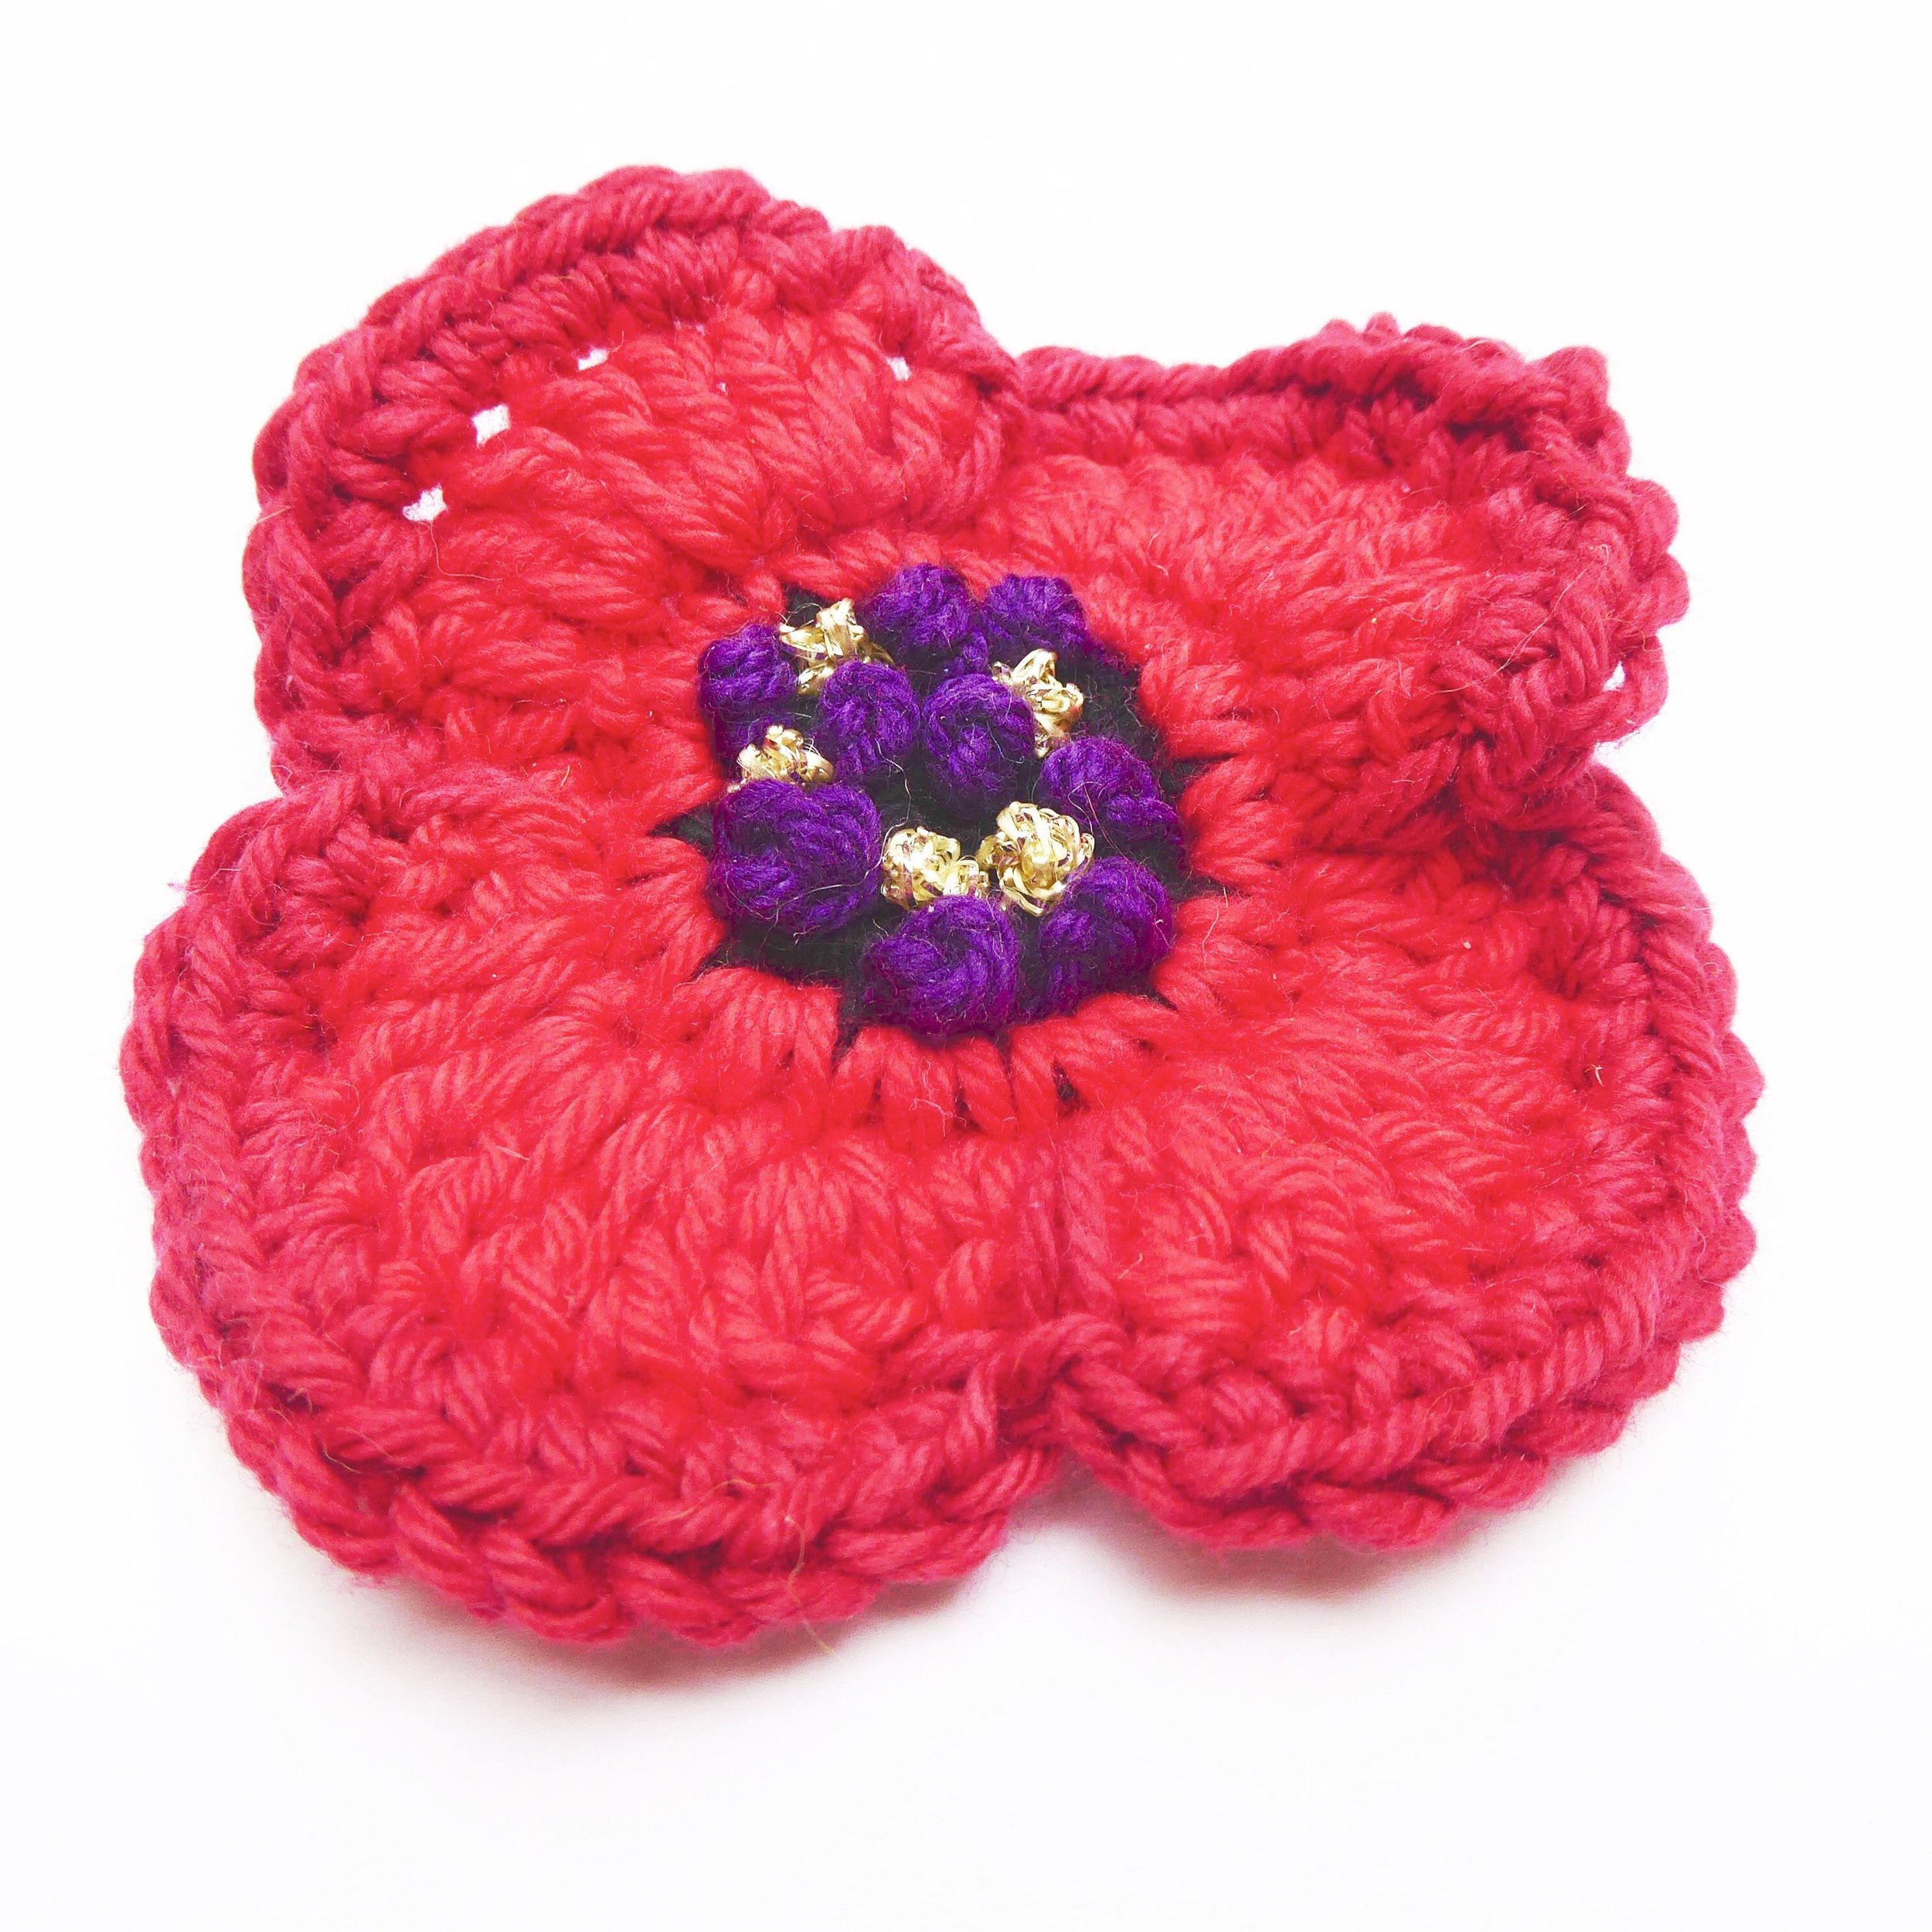 Crochet Remembrance Poppy with embroidery center